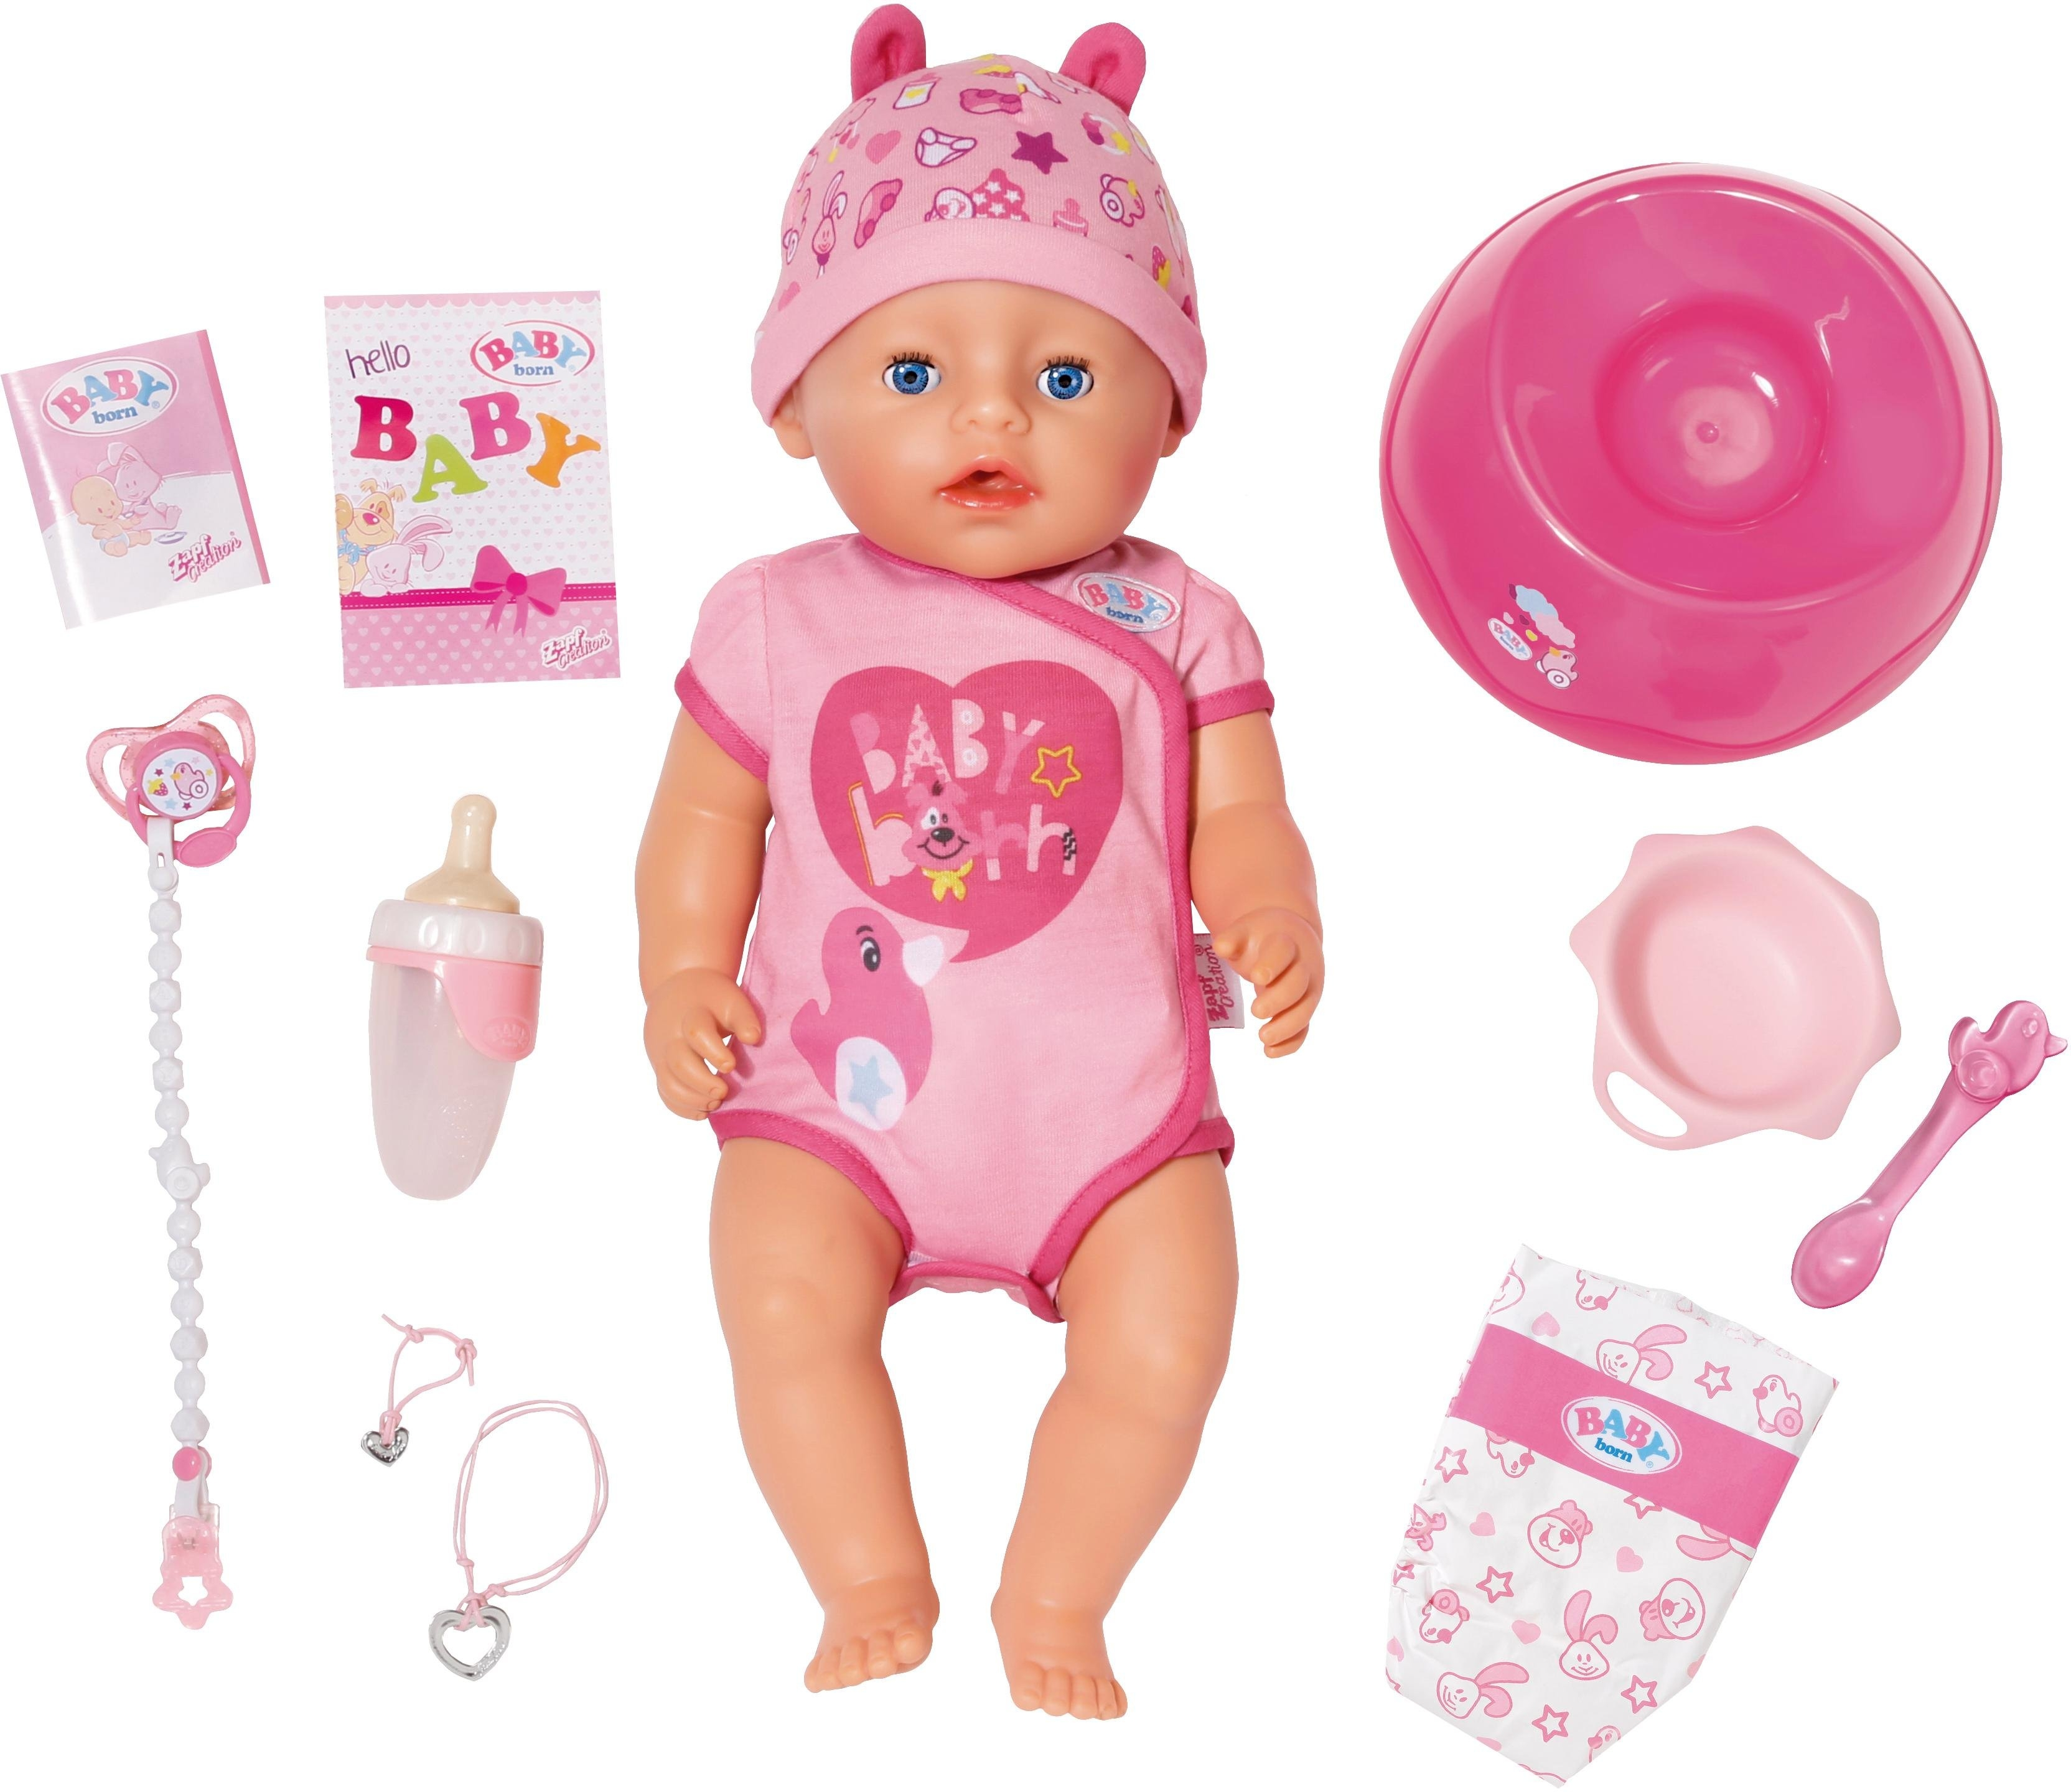 Baby Born Zapf Creation® babypop 'BABY born® Soft Touch Girl' - verschillende betaalmethodes